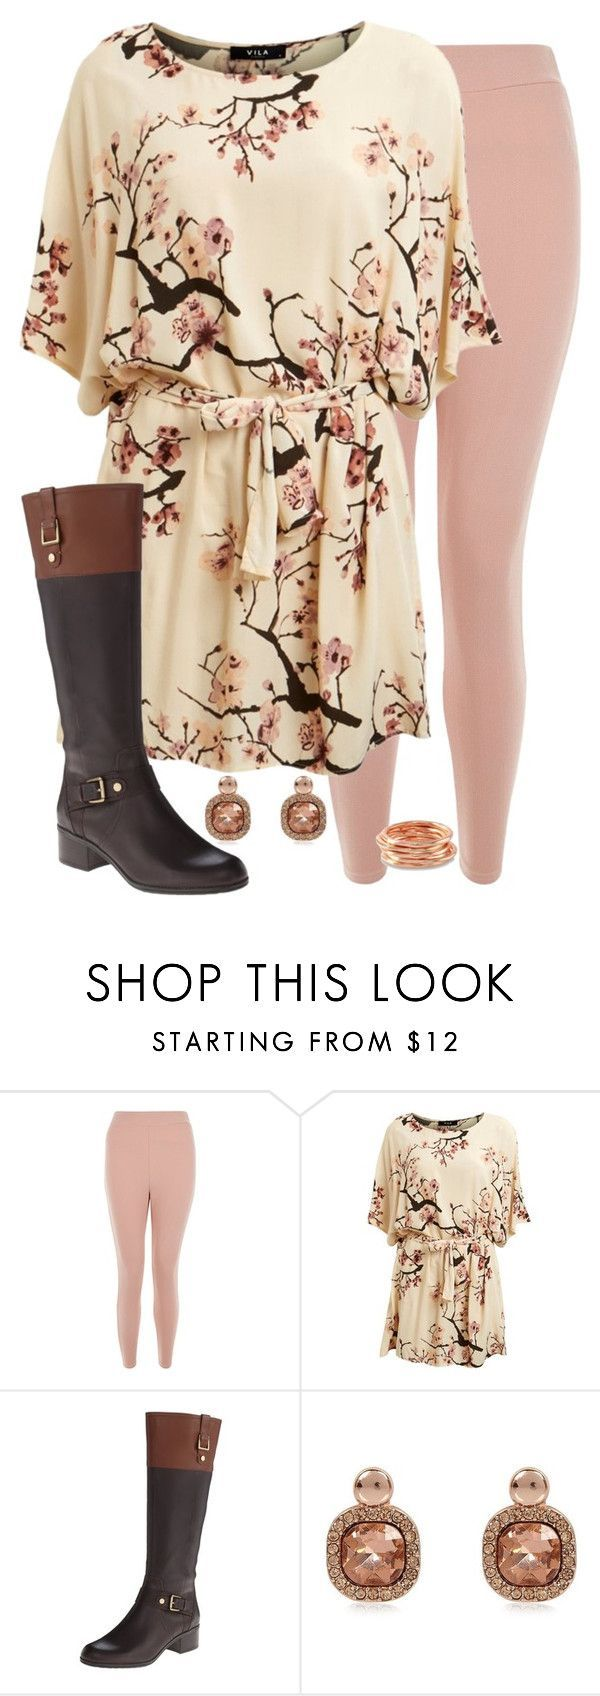 """""""Teacher Outfits on a Teacher's Budget 179"""" by allij28 ❤️ liked on Polyvore featuring New Look, Lipsy, Bandolino and River Island"""